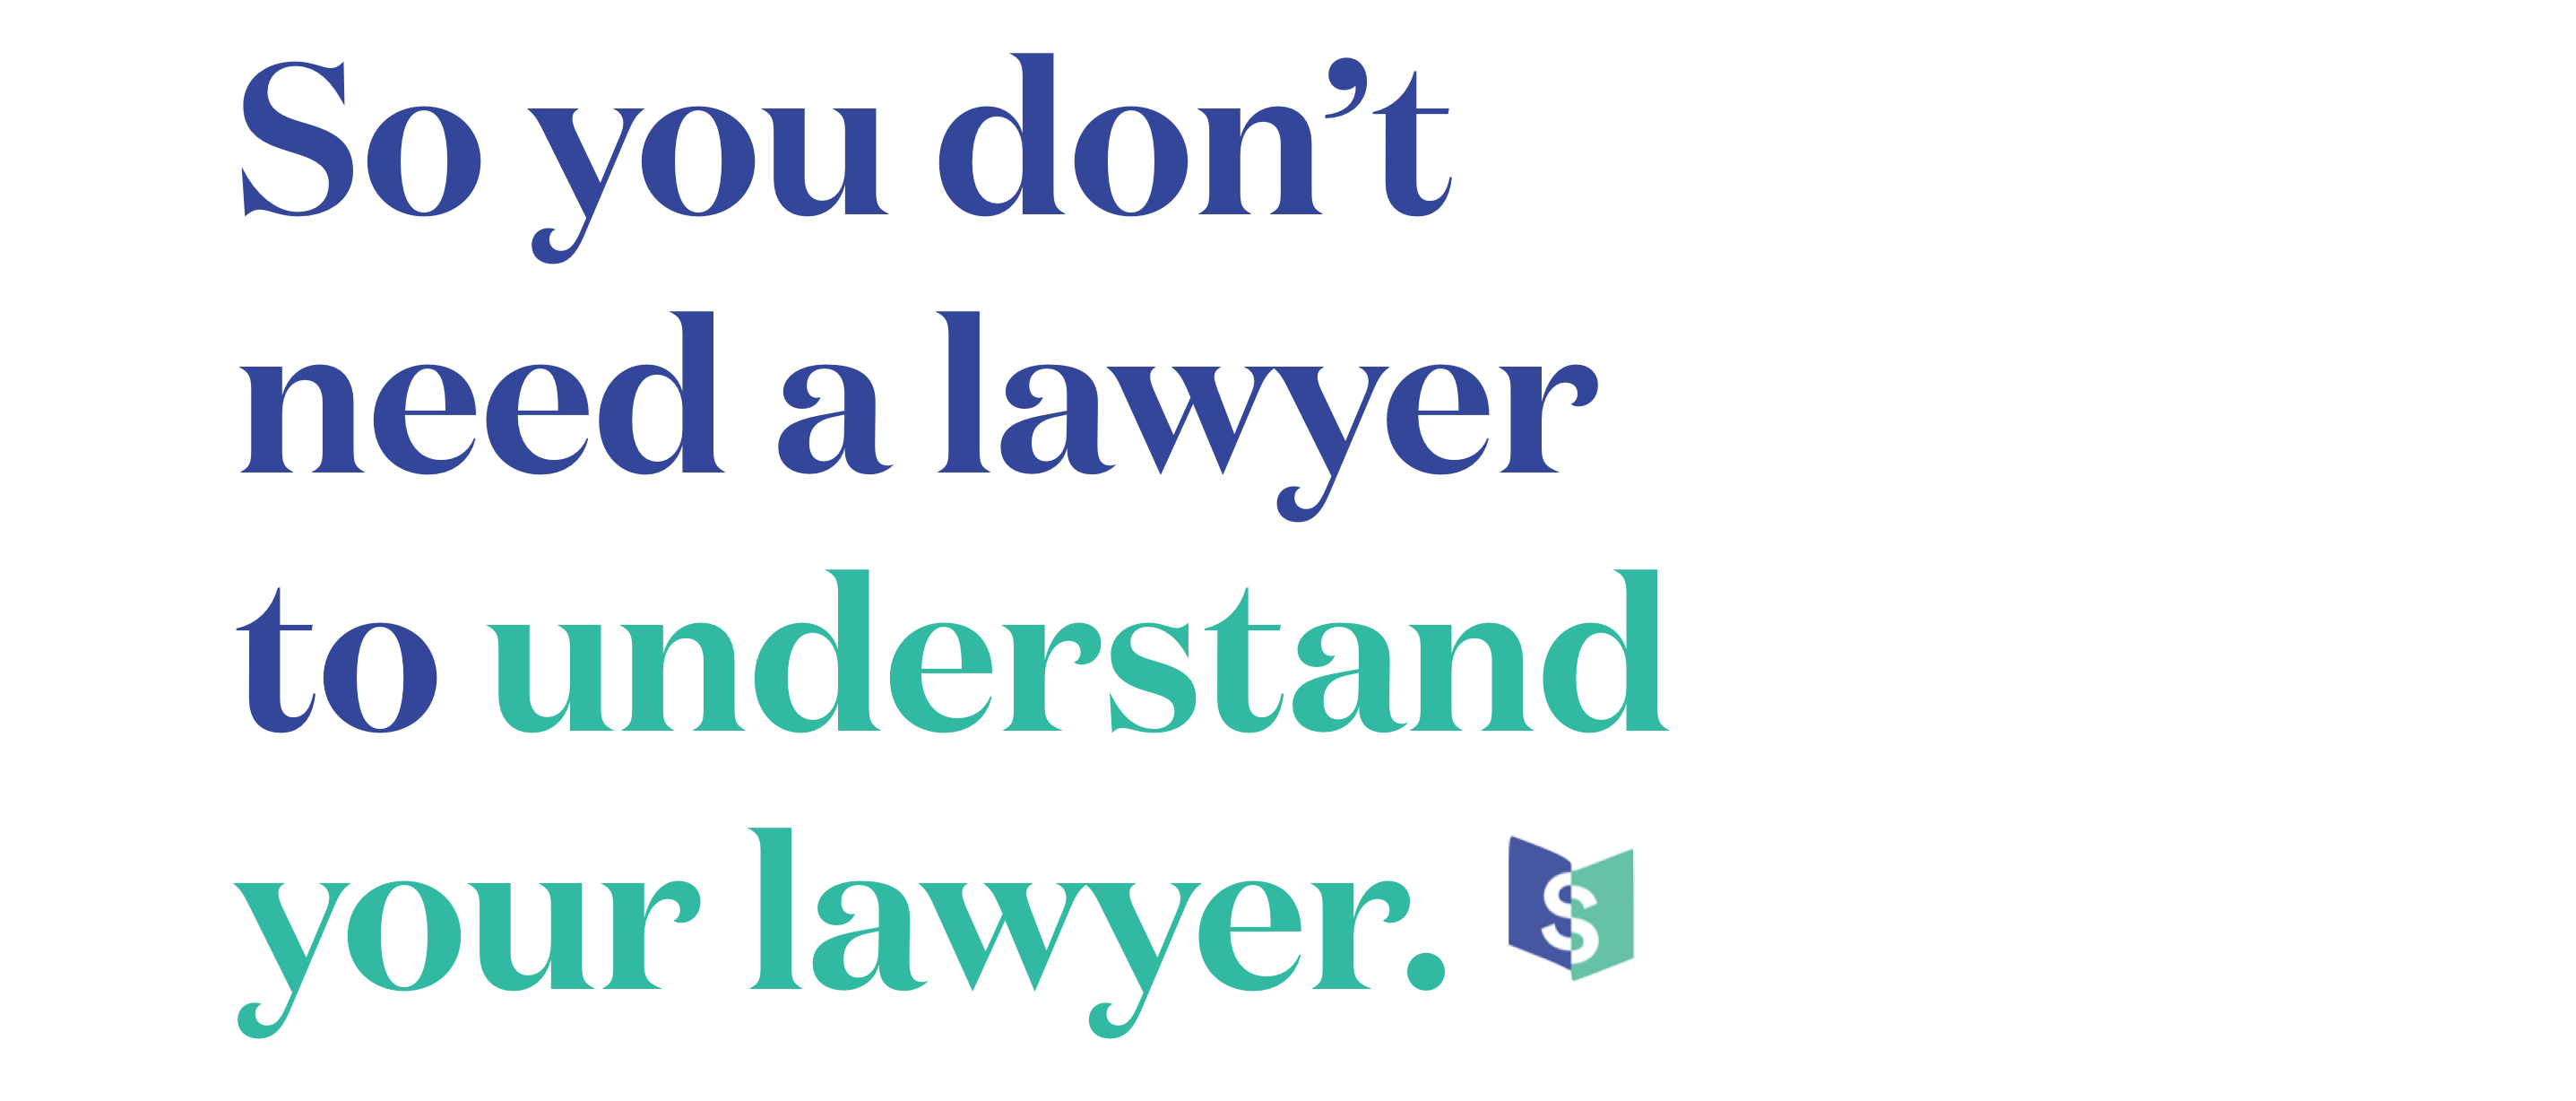 So you don't need a lawyer to understand your lawyer.